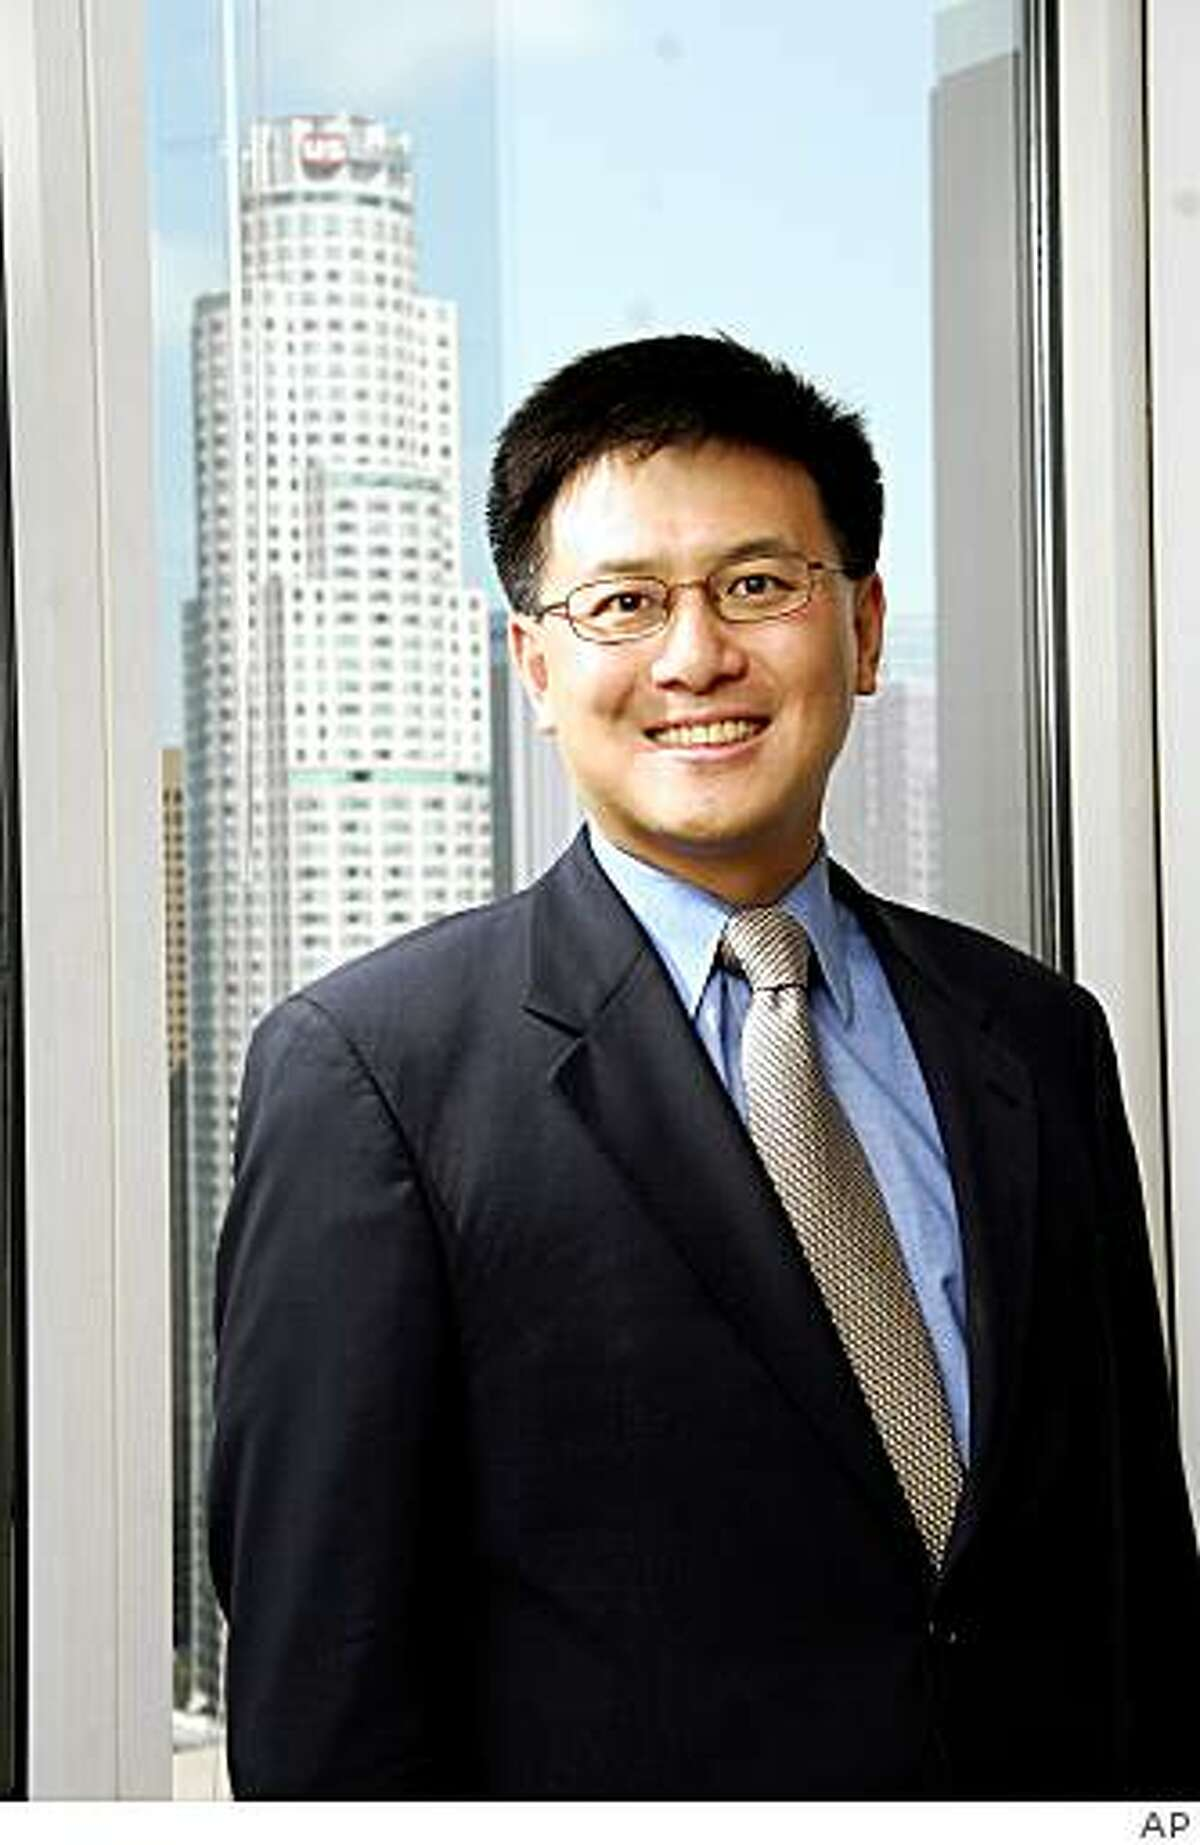 In this undated photo provided by the John Chiang For State Controller campaign, shown is Board of Equalization member John Chiang.